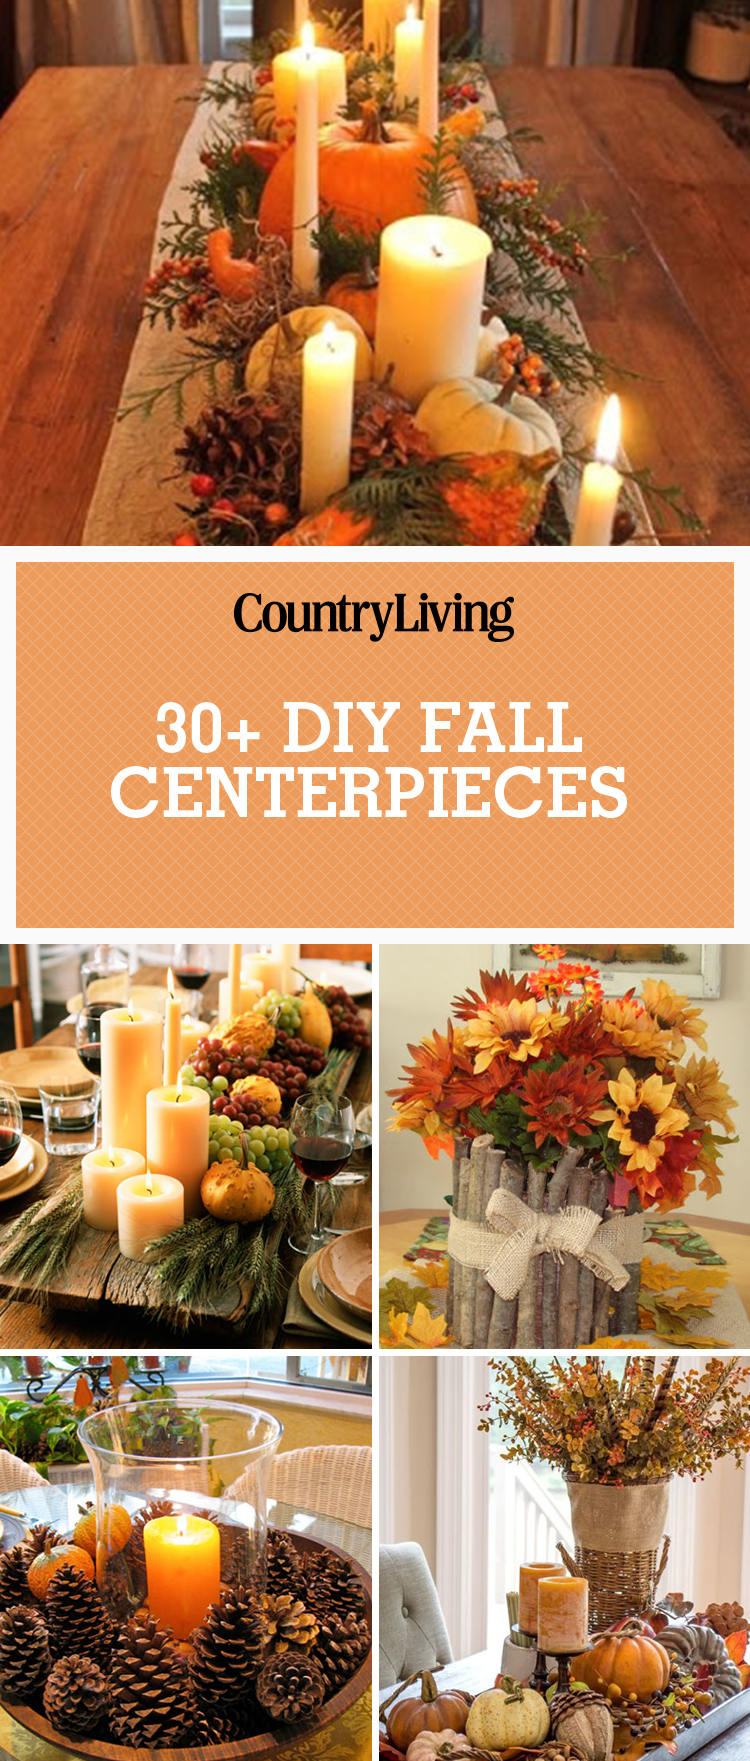 Fall table centerpieces autumn centerpiece ideas